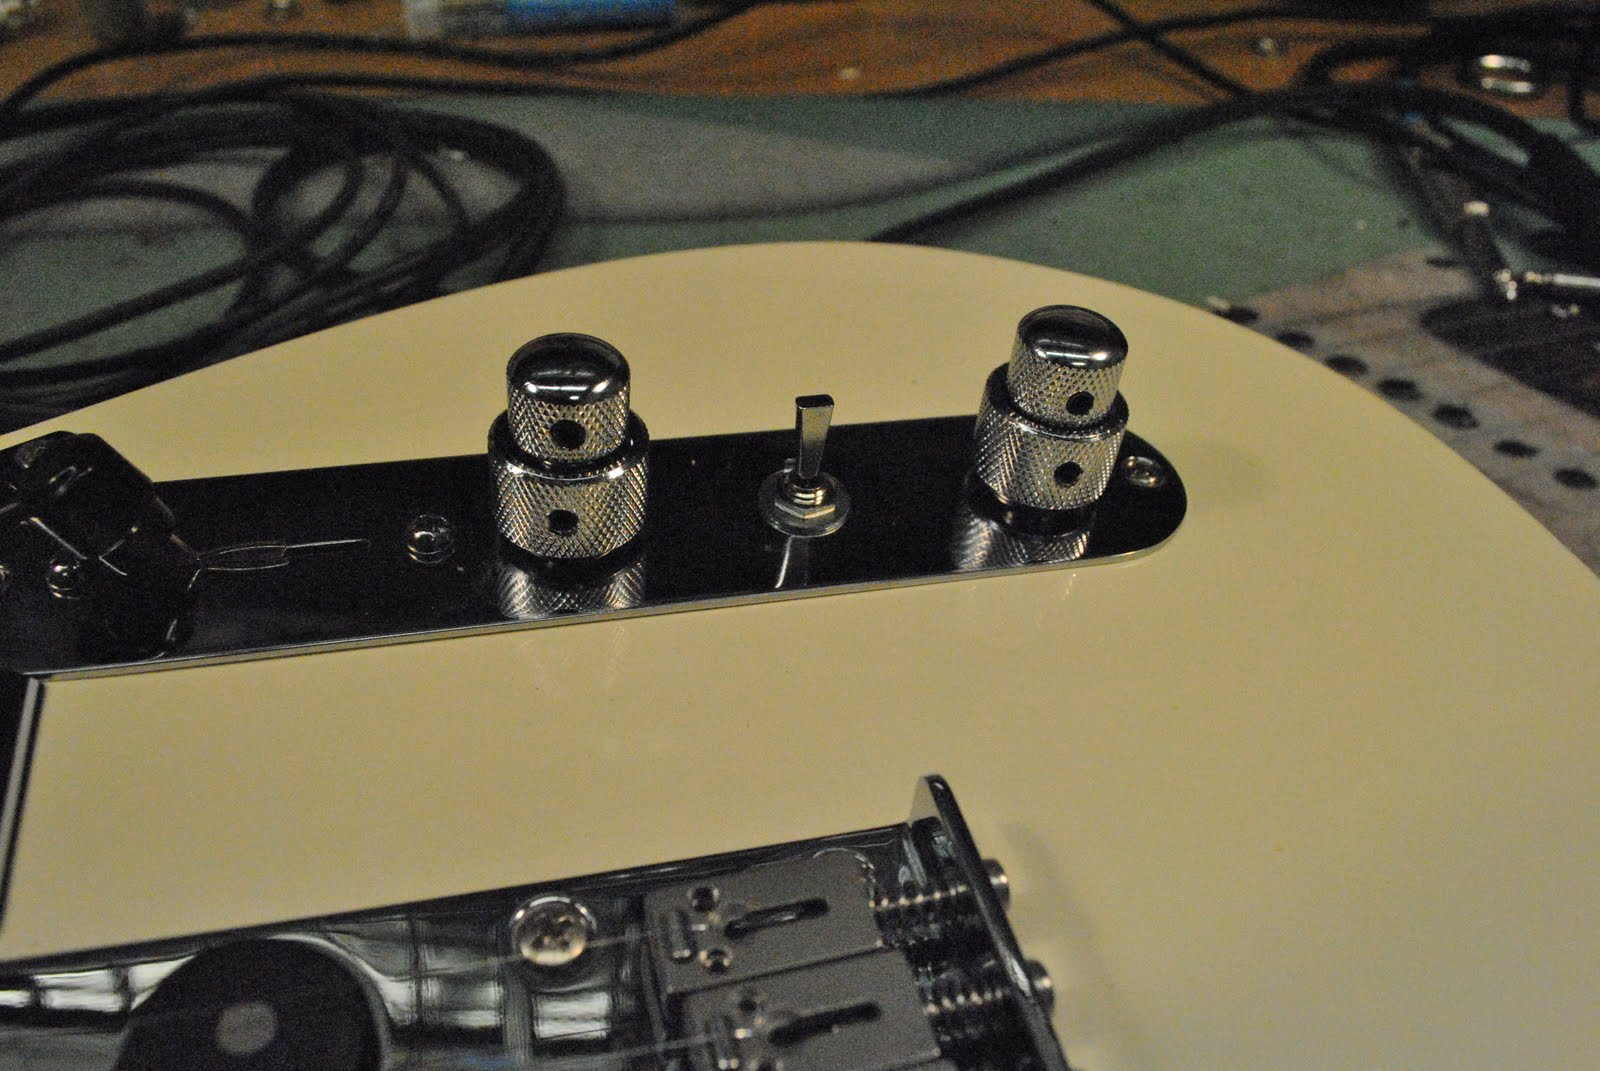 Tv Jones Pickups The Gear Page Telecaster Pickup Wiring Stack Concentric Pots Can Be Wired Just Like Separate Could So You Wire Them As Tone Volume Stacks And Control Each Independantly